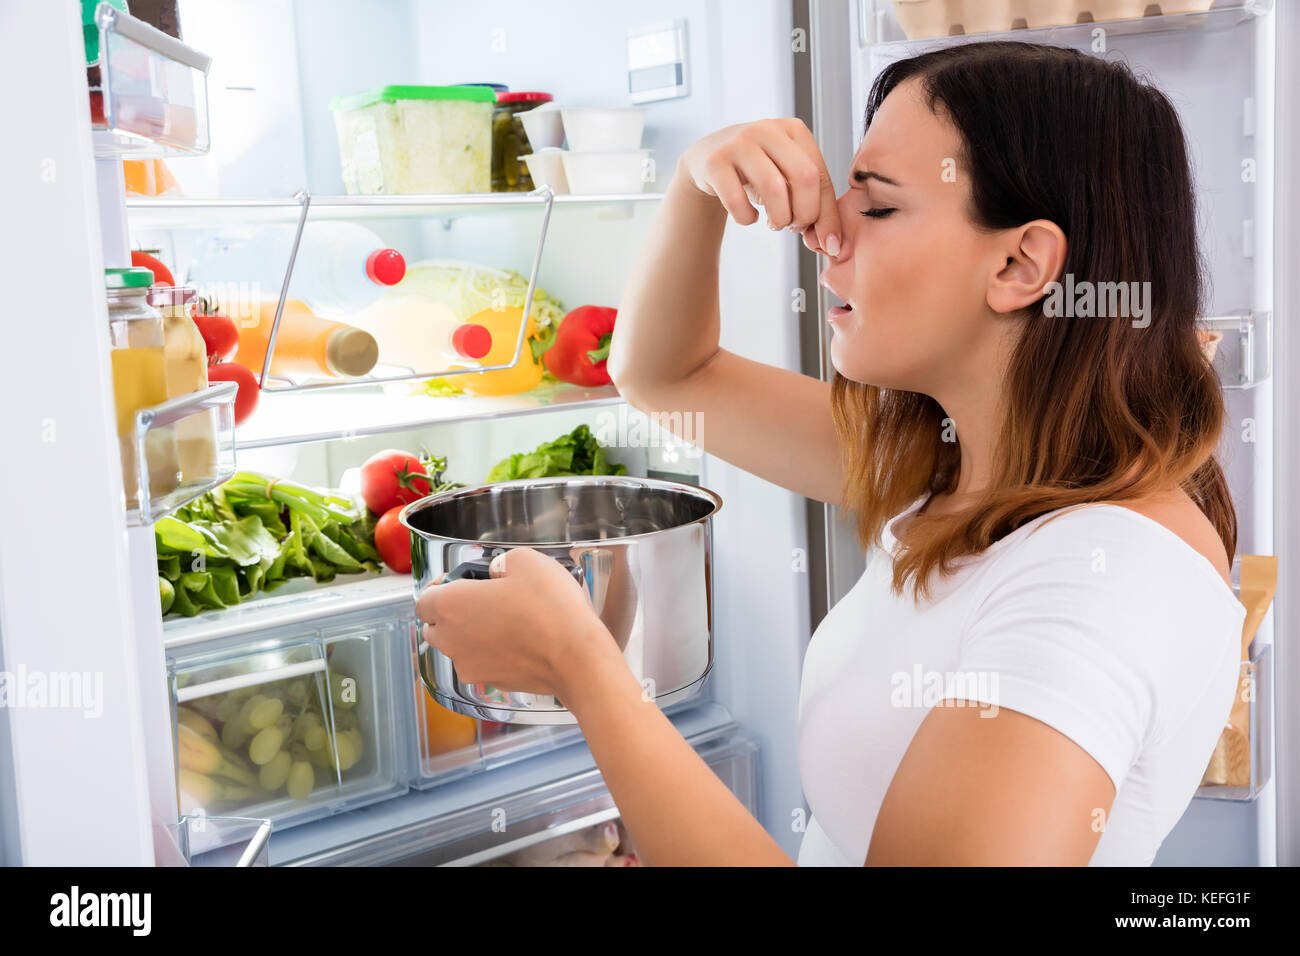 Young Woman Noticed Foul Smell Of Food Near Open Refrigerator - Stock Image